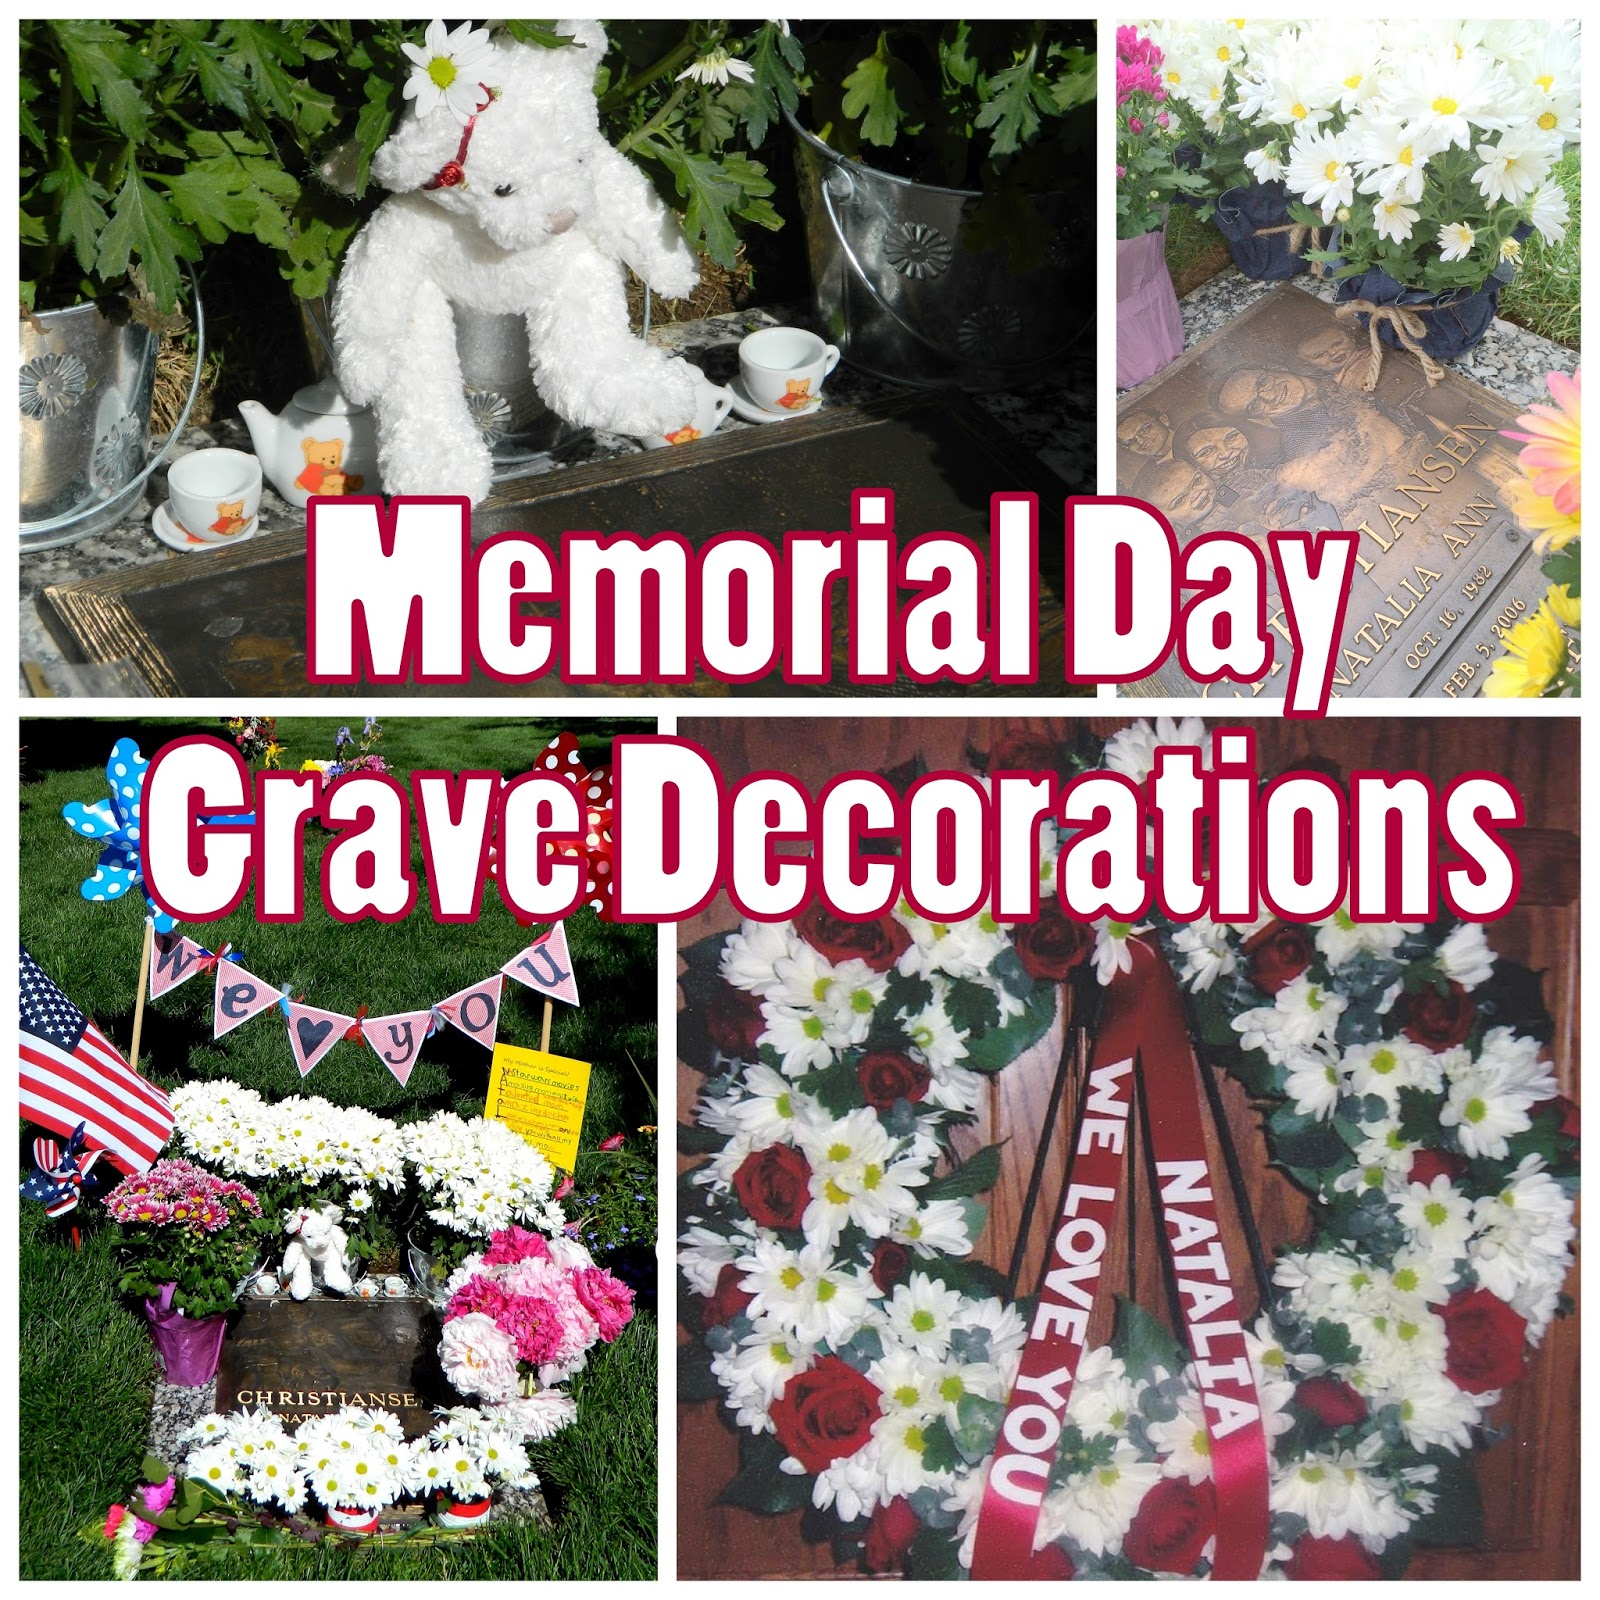 CreateJoy2Day: Memorial Day